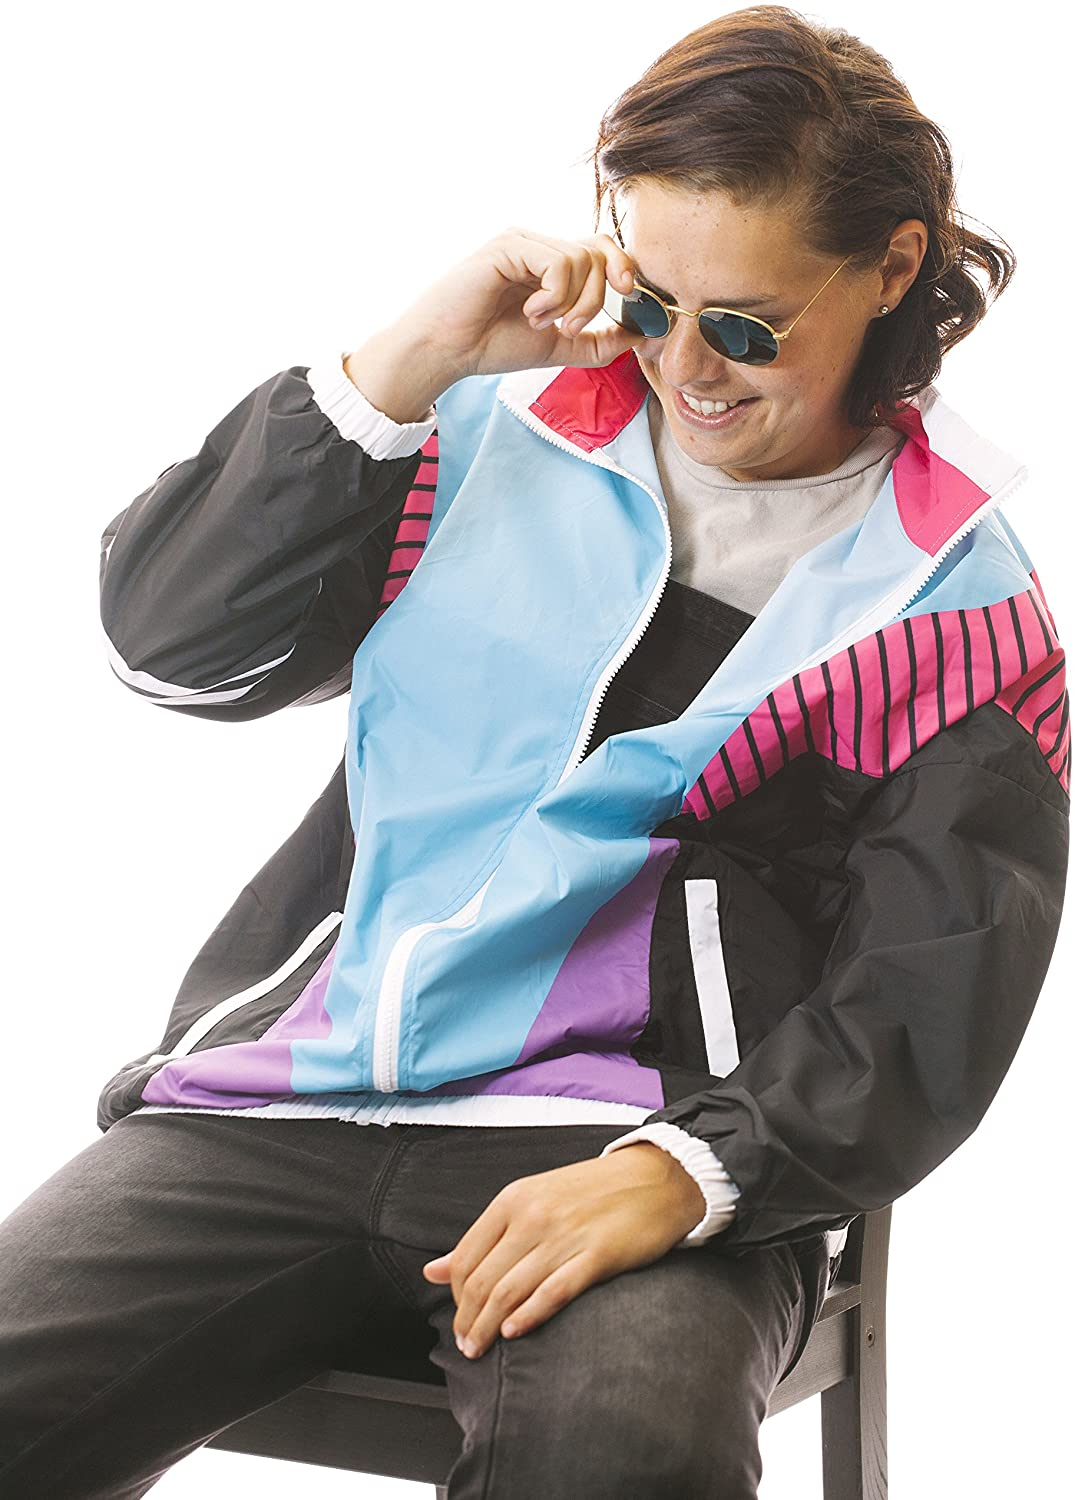 90s Outfits for Guys | Trendy, Party, Cool, Casaul Funny Guy Mugs 80s & 90s Retro Neon Windbreakers  AT vintagedancer.com